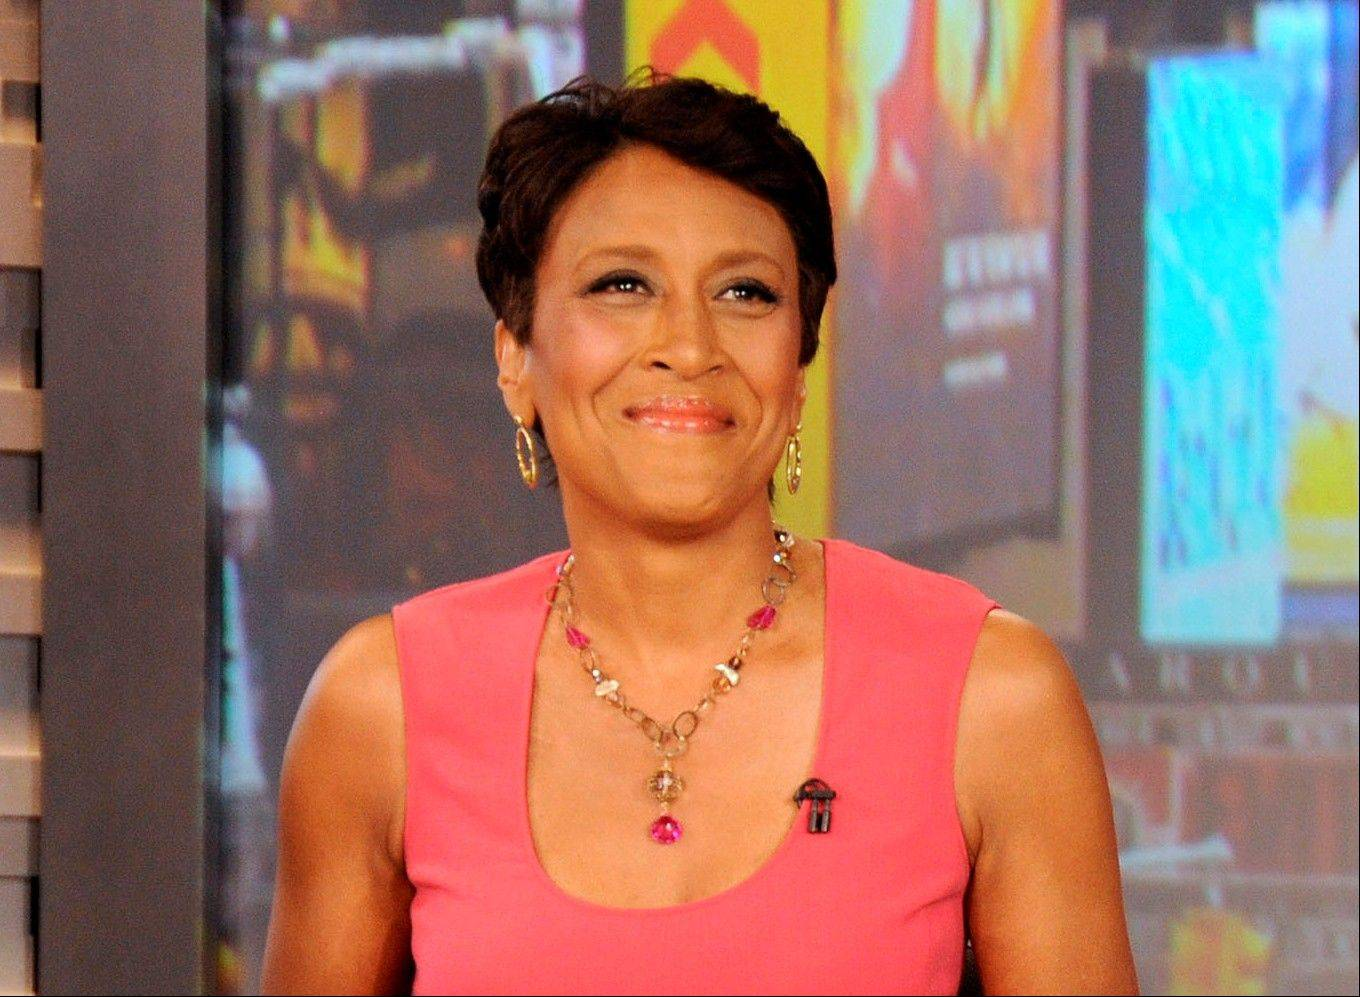 TV host Robin Roberts will receive the Arthur Ashe Courage Award at the 2012 ESPYS.